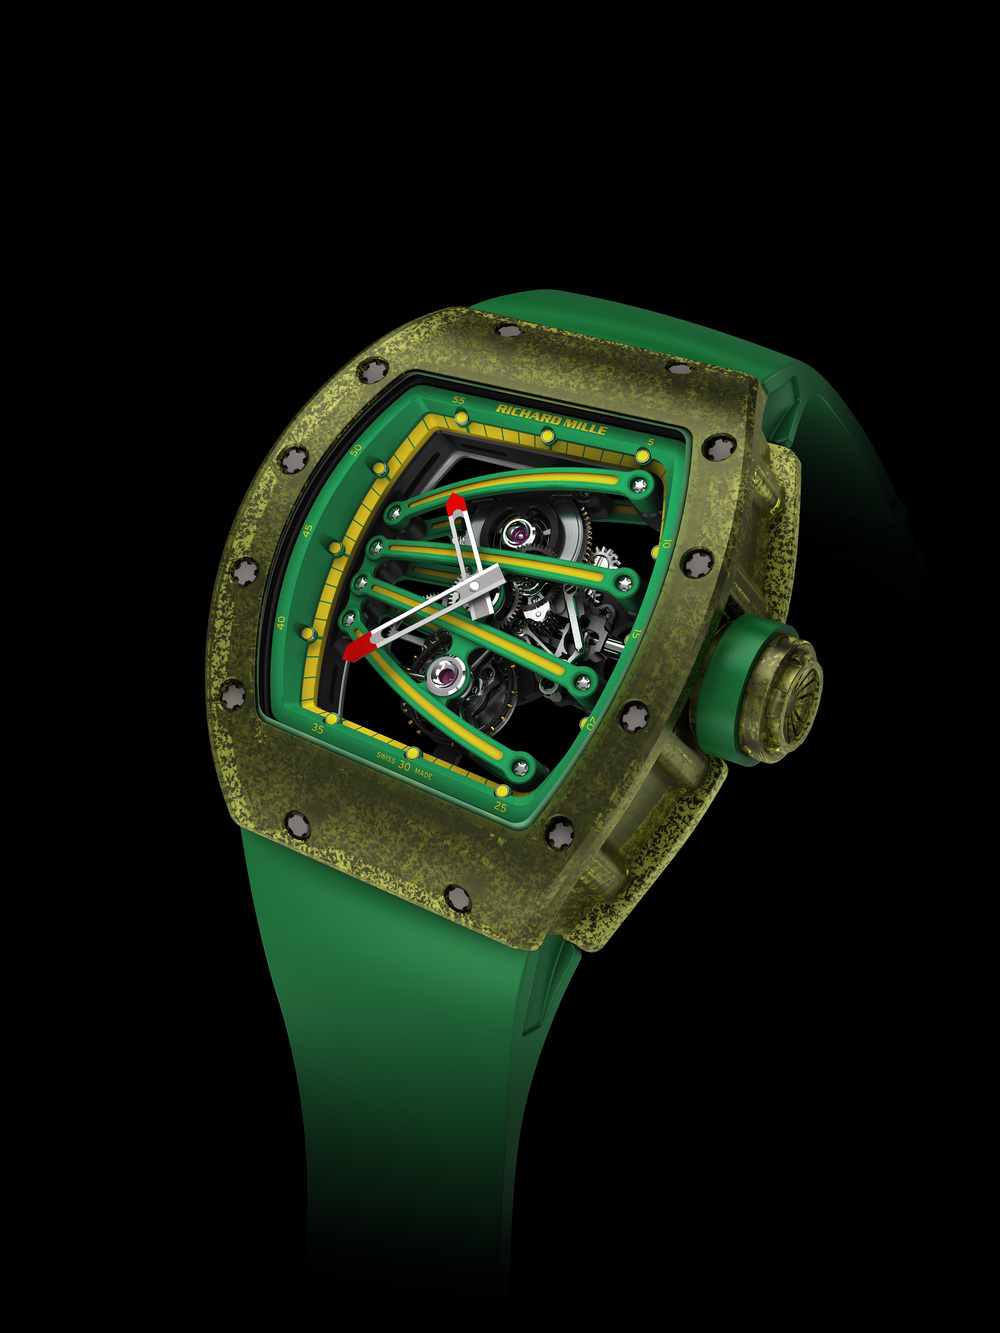 The Richard Mille RM 59-01 Tourbillon Yohan Blake